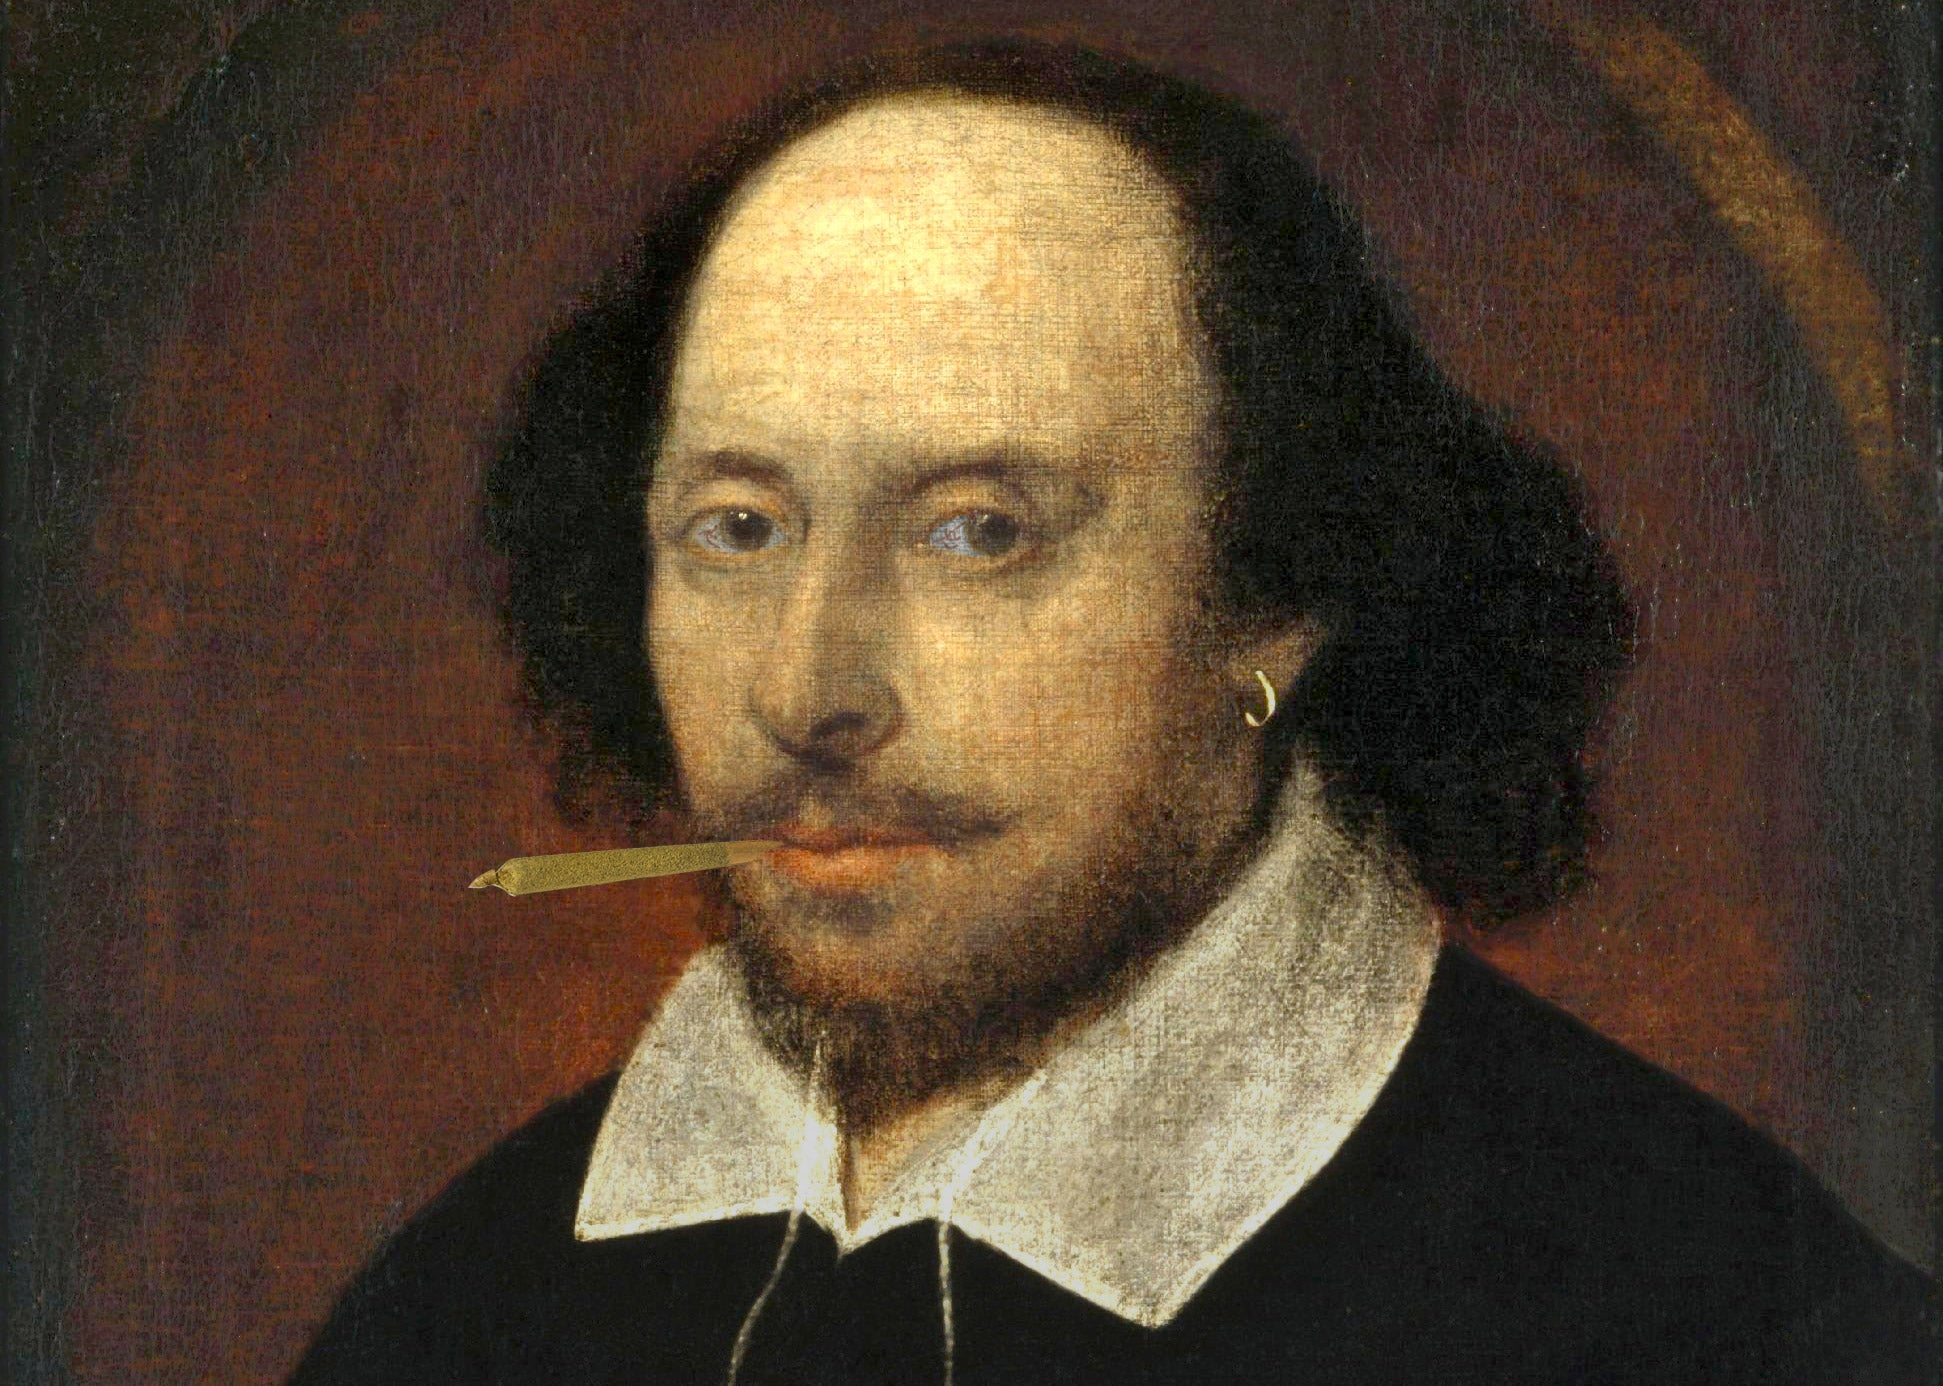 The Chandos Portrait of William Shakespeare altered to add a joint inserted in his mouth and a little bit of red in his eyes.